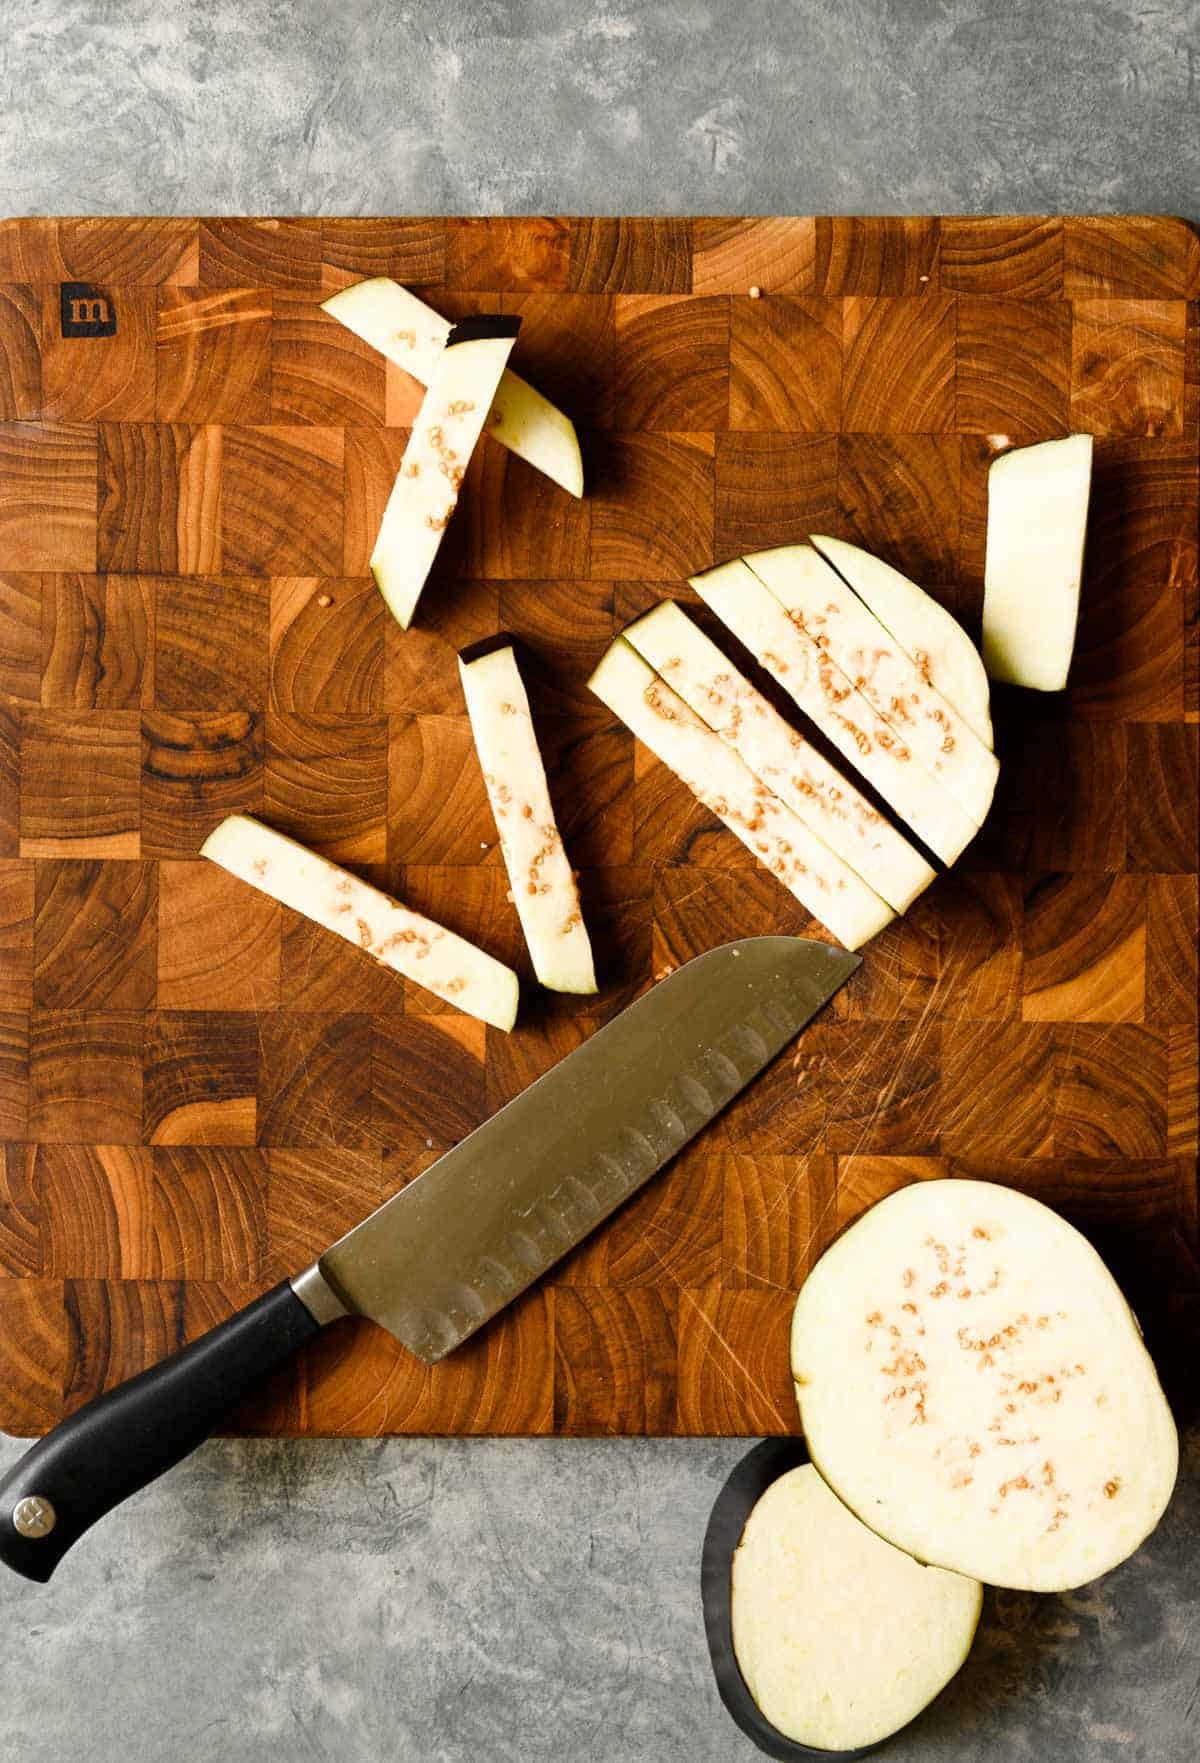 eggplant being sliced into fries on a wooden cutting board.